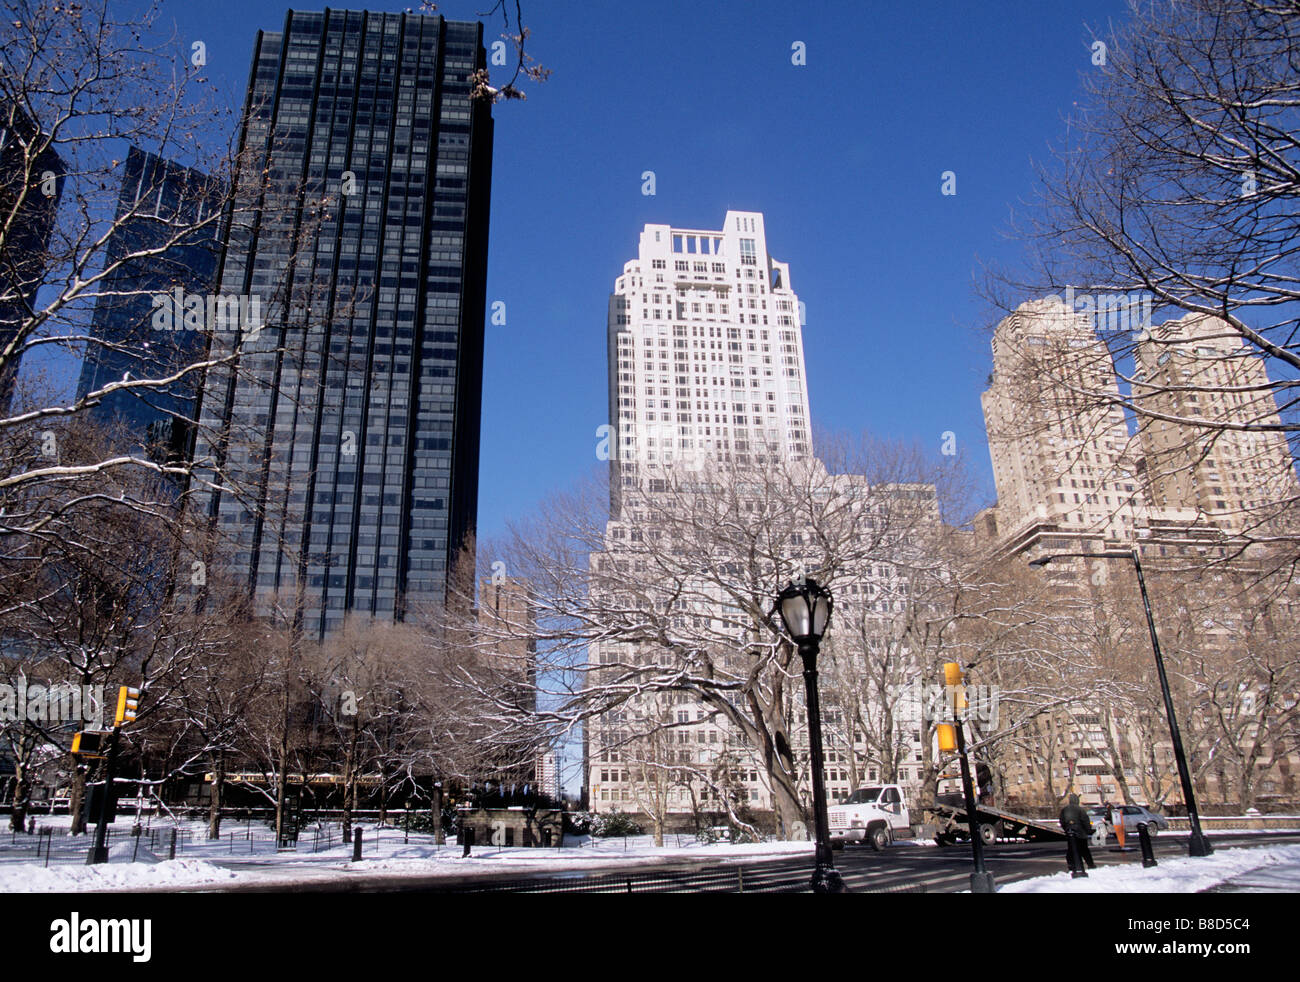 Stock photo usa new york city central park west buildings 15 central park west the century and trump international hotel and tower